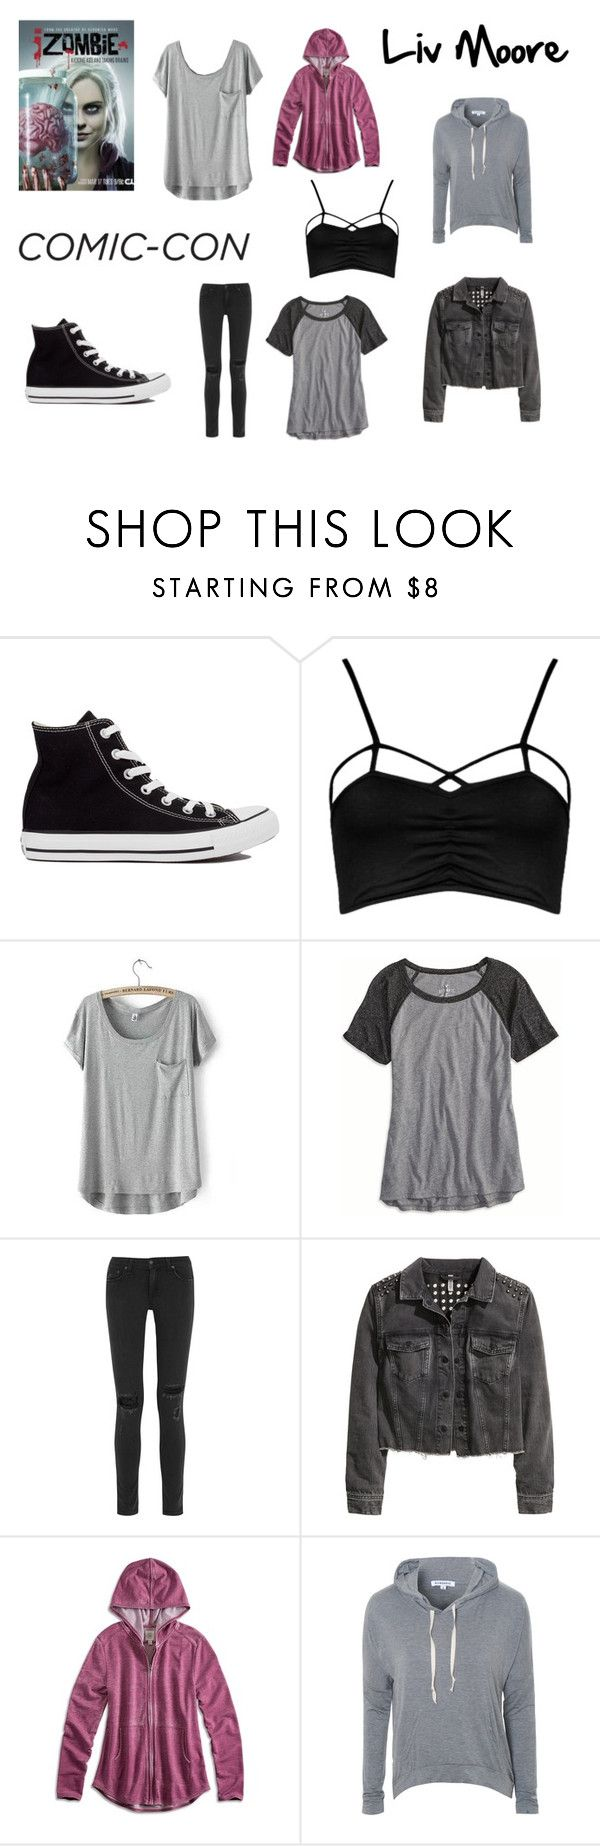 """""""Comic-con: Liv Moore"""" by musicalfashion78 ❤ liked on Polyvore featuring Converse, Boohoo, American Eagle Outfitters, rag & bone, H&M, Lucky Brand, Glamorous, women's clothing, women and female"""